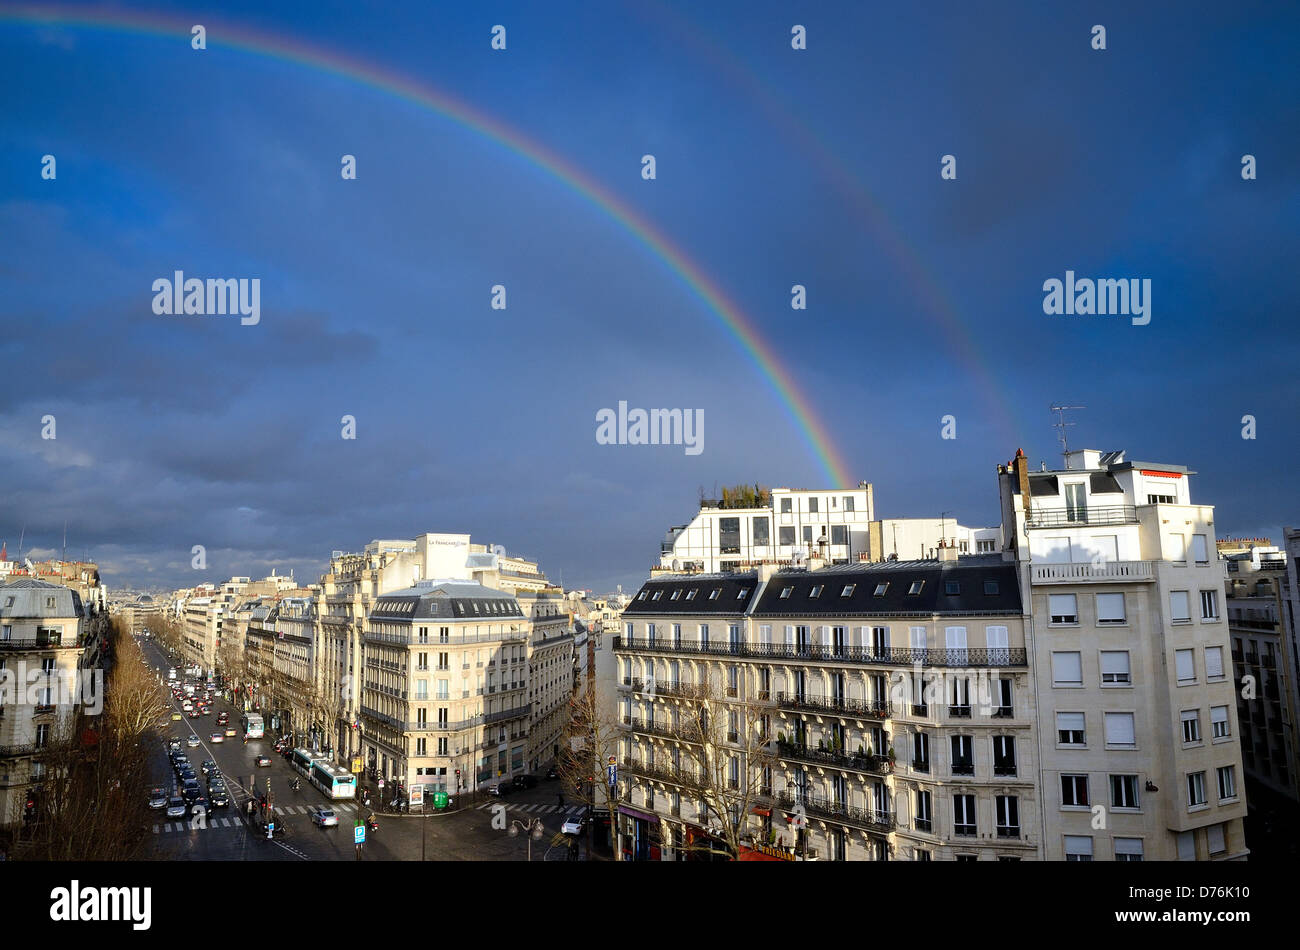 Boulevard Haussmann  skyline with rainbow against dark blue sky Paris France EU - Stock Image